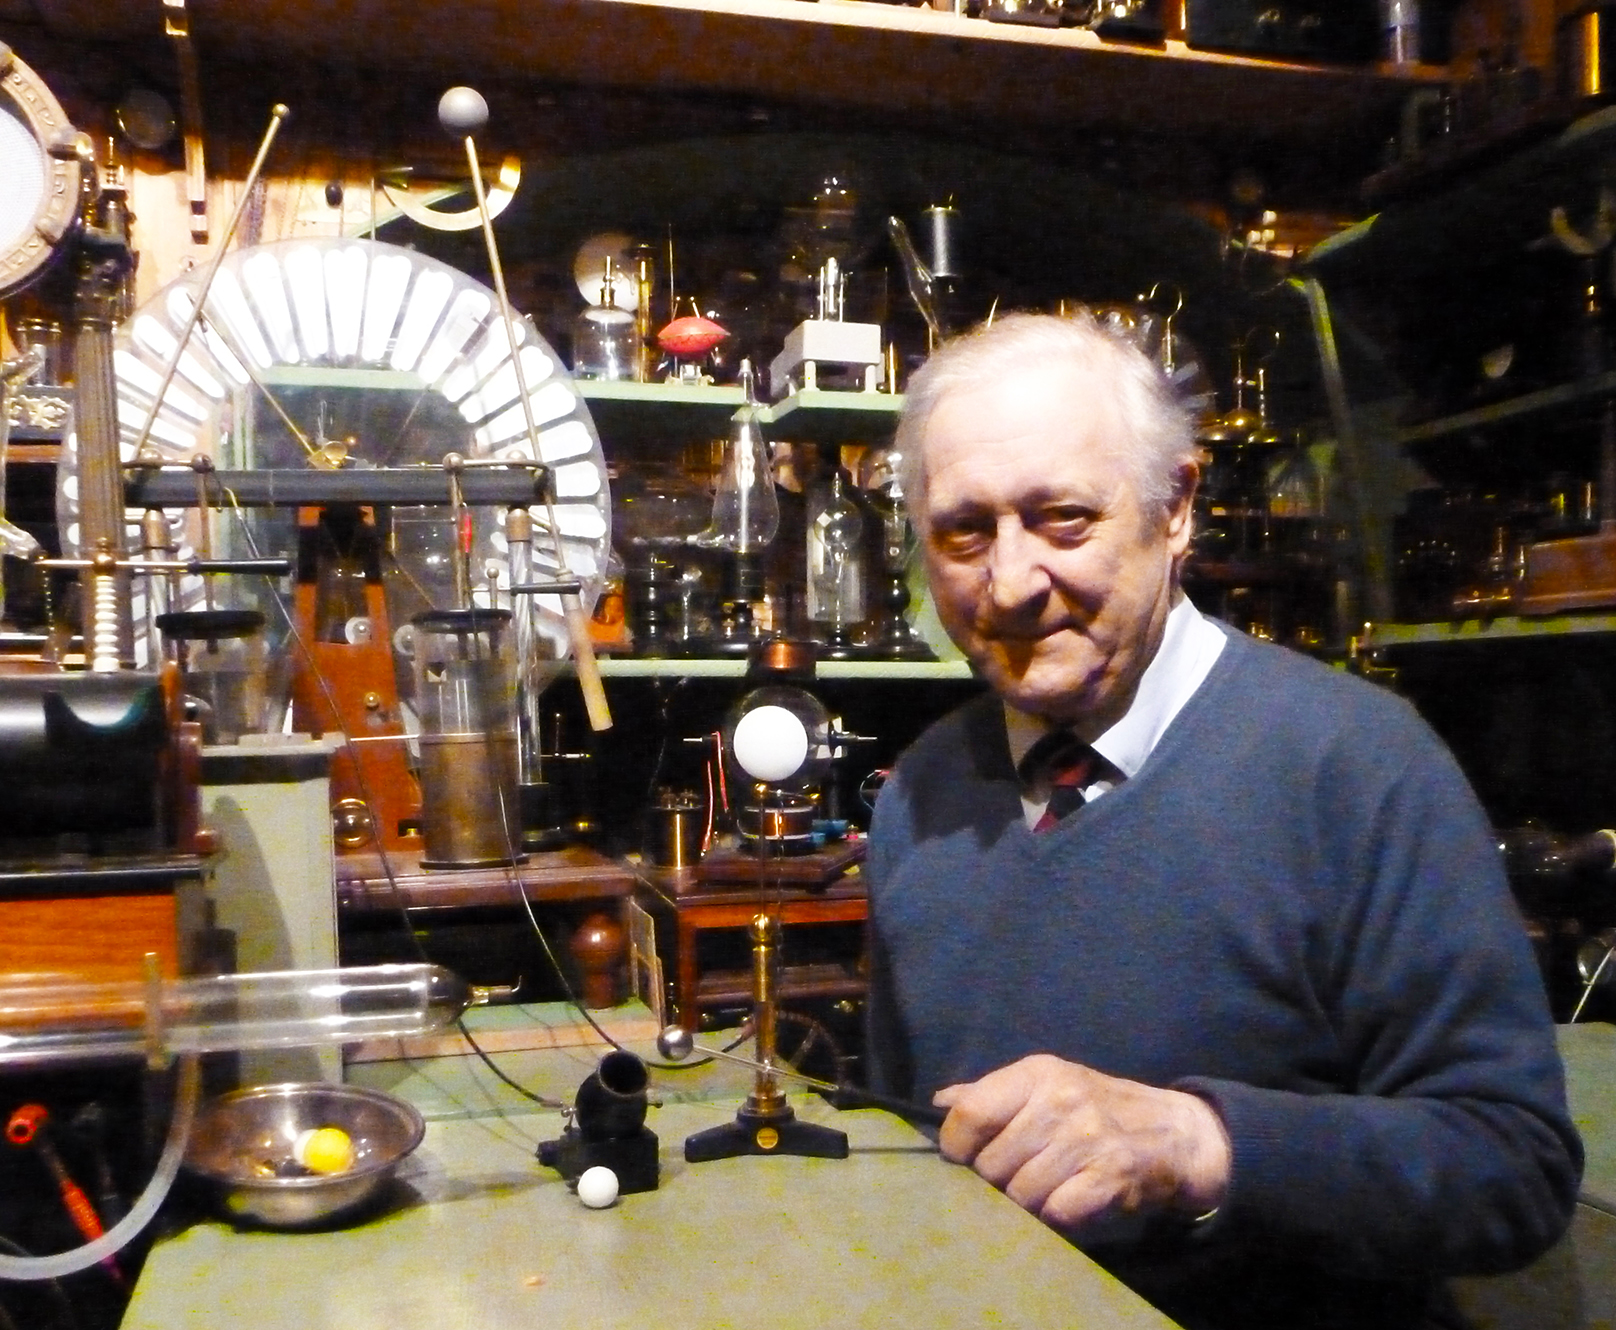 Museum of Victorian Science proprietor Tony Swift